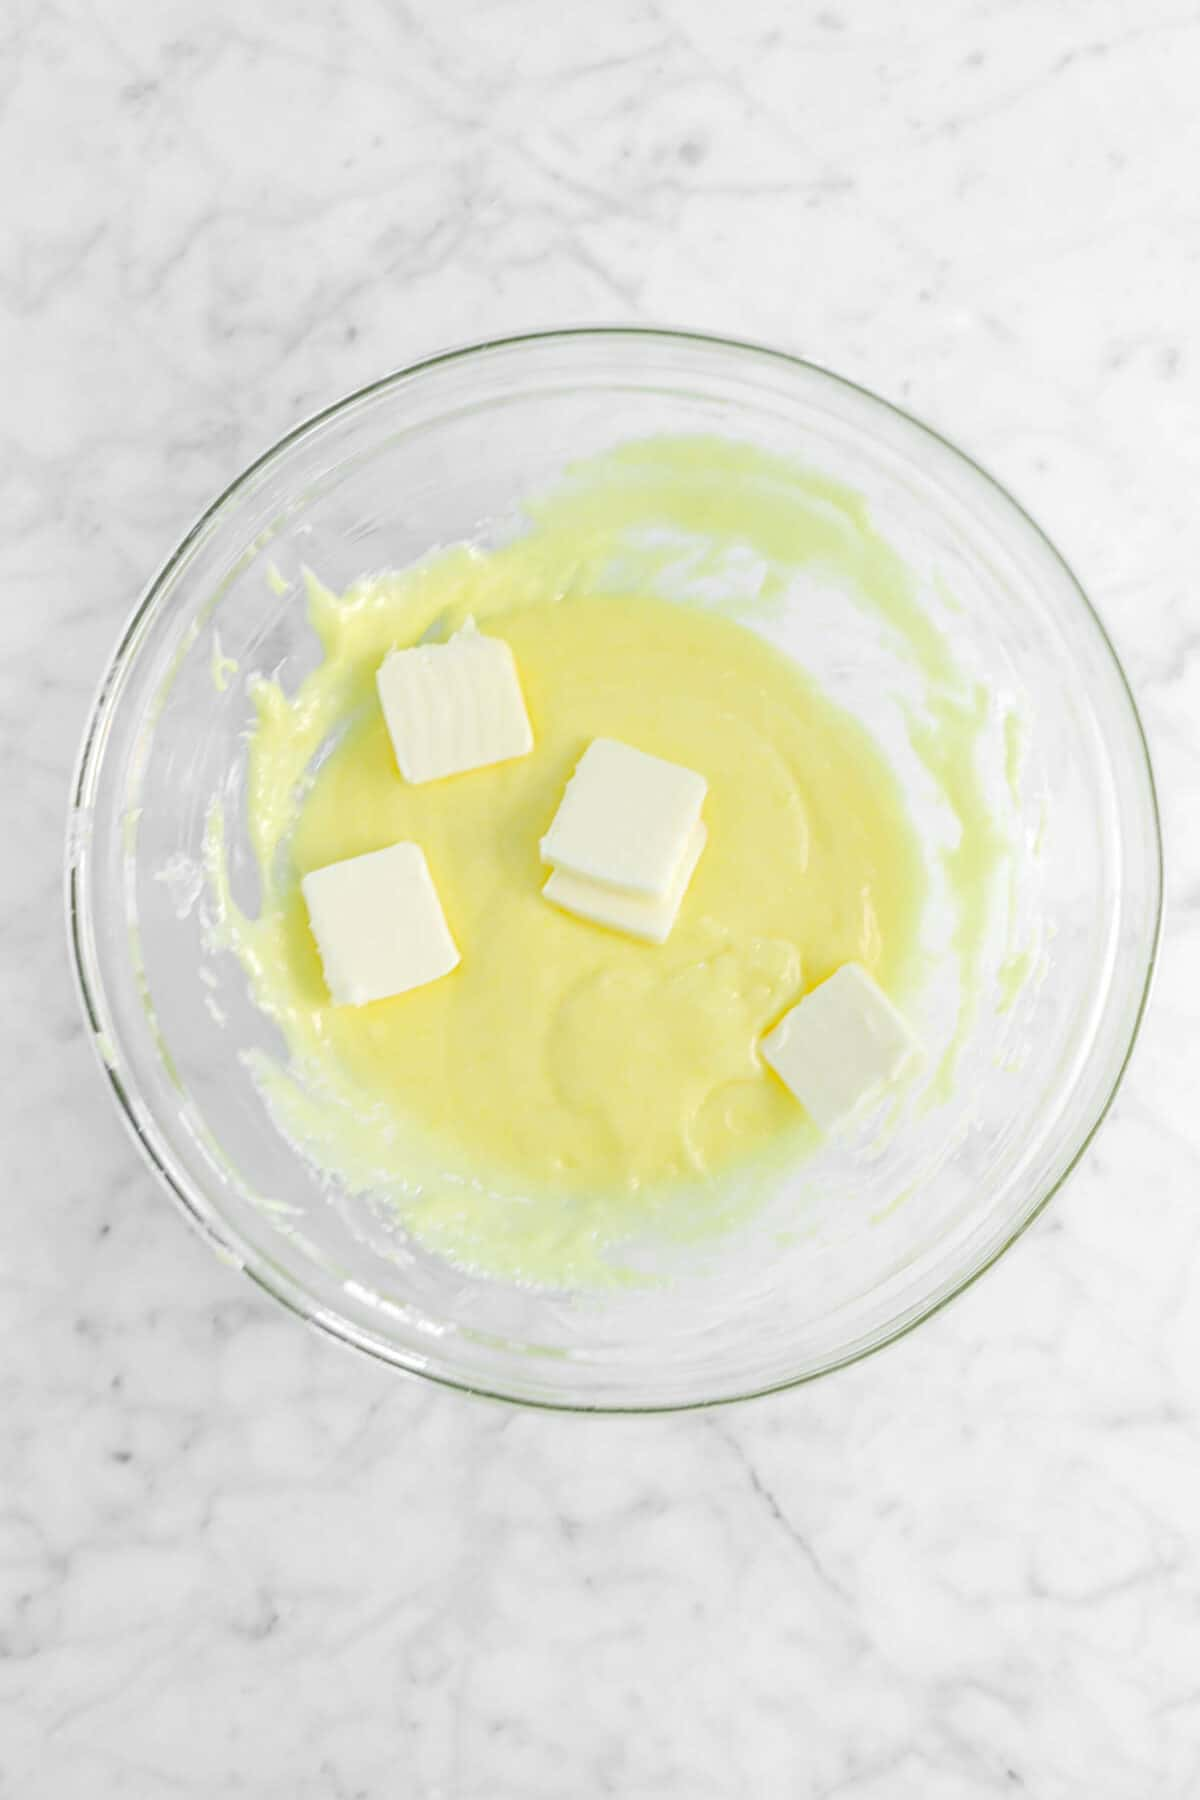 butter slices added on top of custard